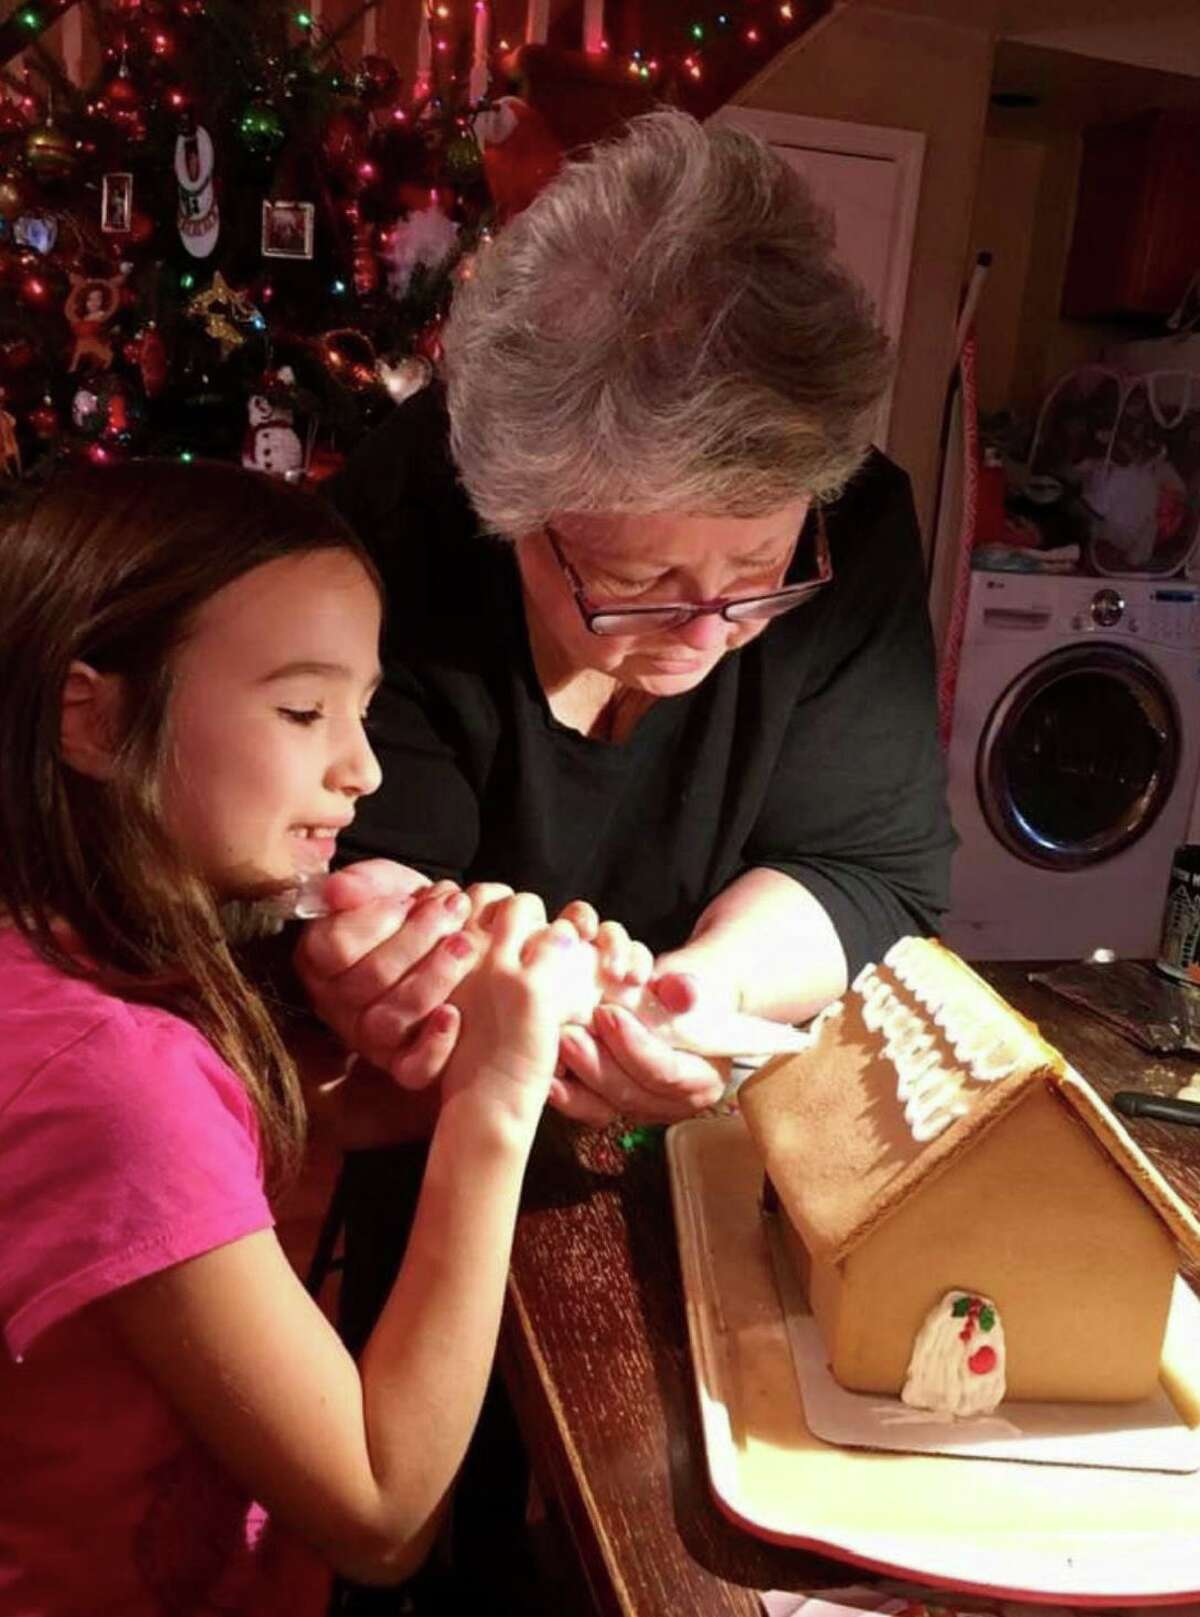 Jill Owens Zinzi teaches her granddaughter, Sofia, piping skills for icing a gingerbread roof. Sofia was 7 at the time. Zinzi, who started the Kent Gingerbread Festival, says Sofia is a third-generation gingerbread fan, along with her three grandsons. The Kent Gingerbread Festival, one of the largest in Connecticut, is in its 9th year and runs through December.